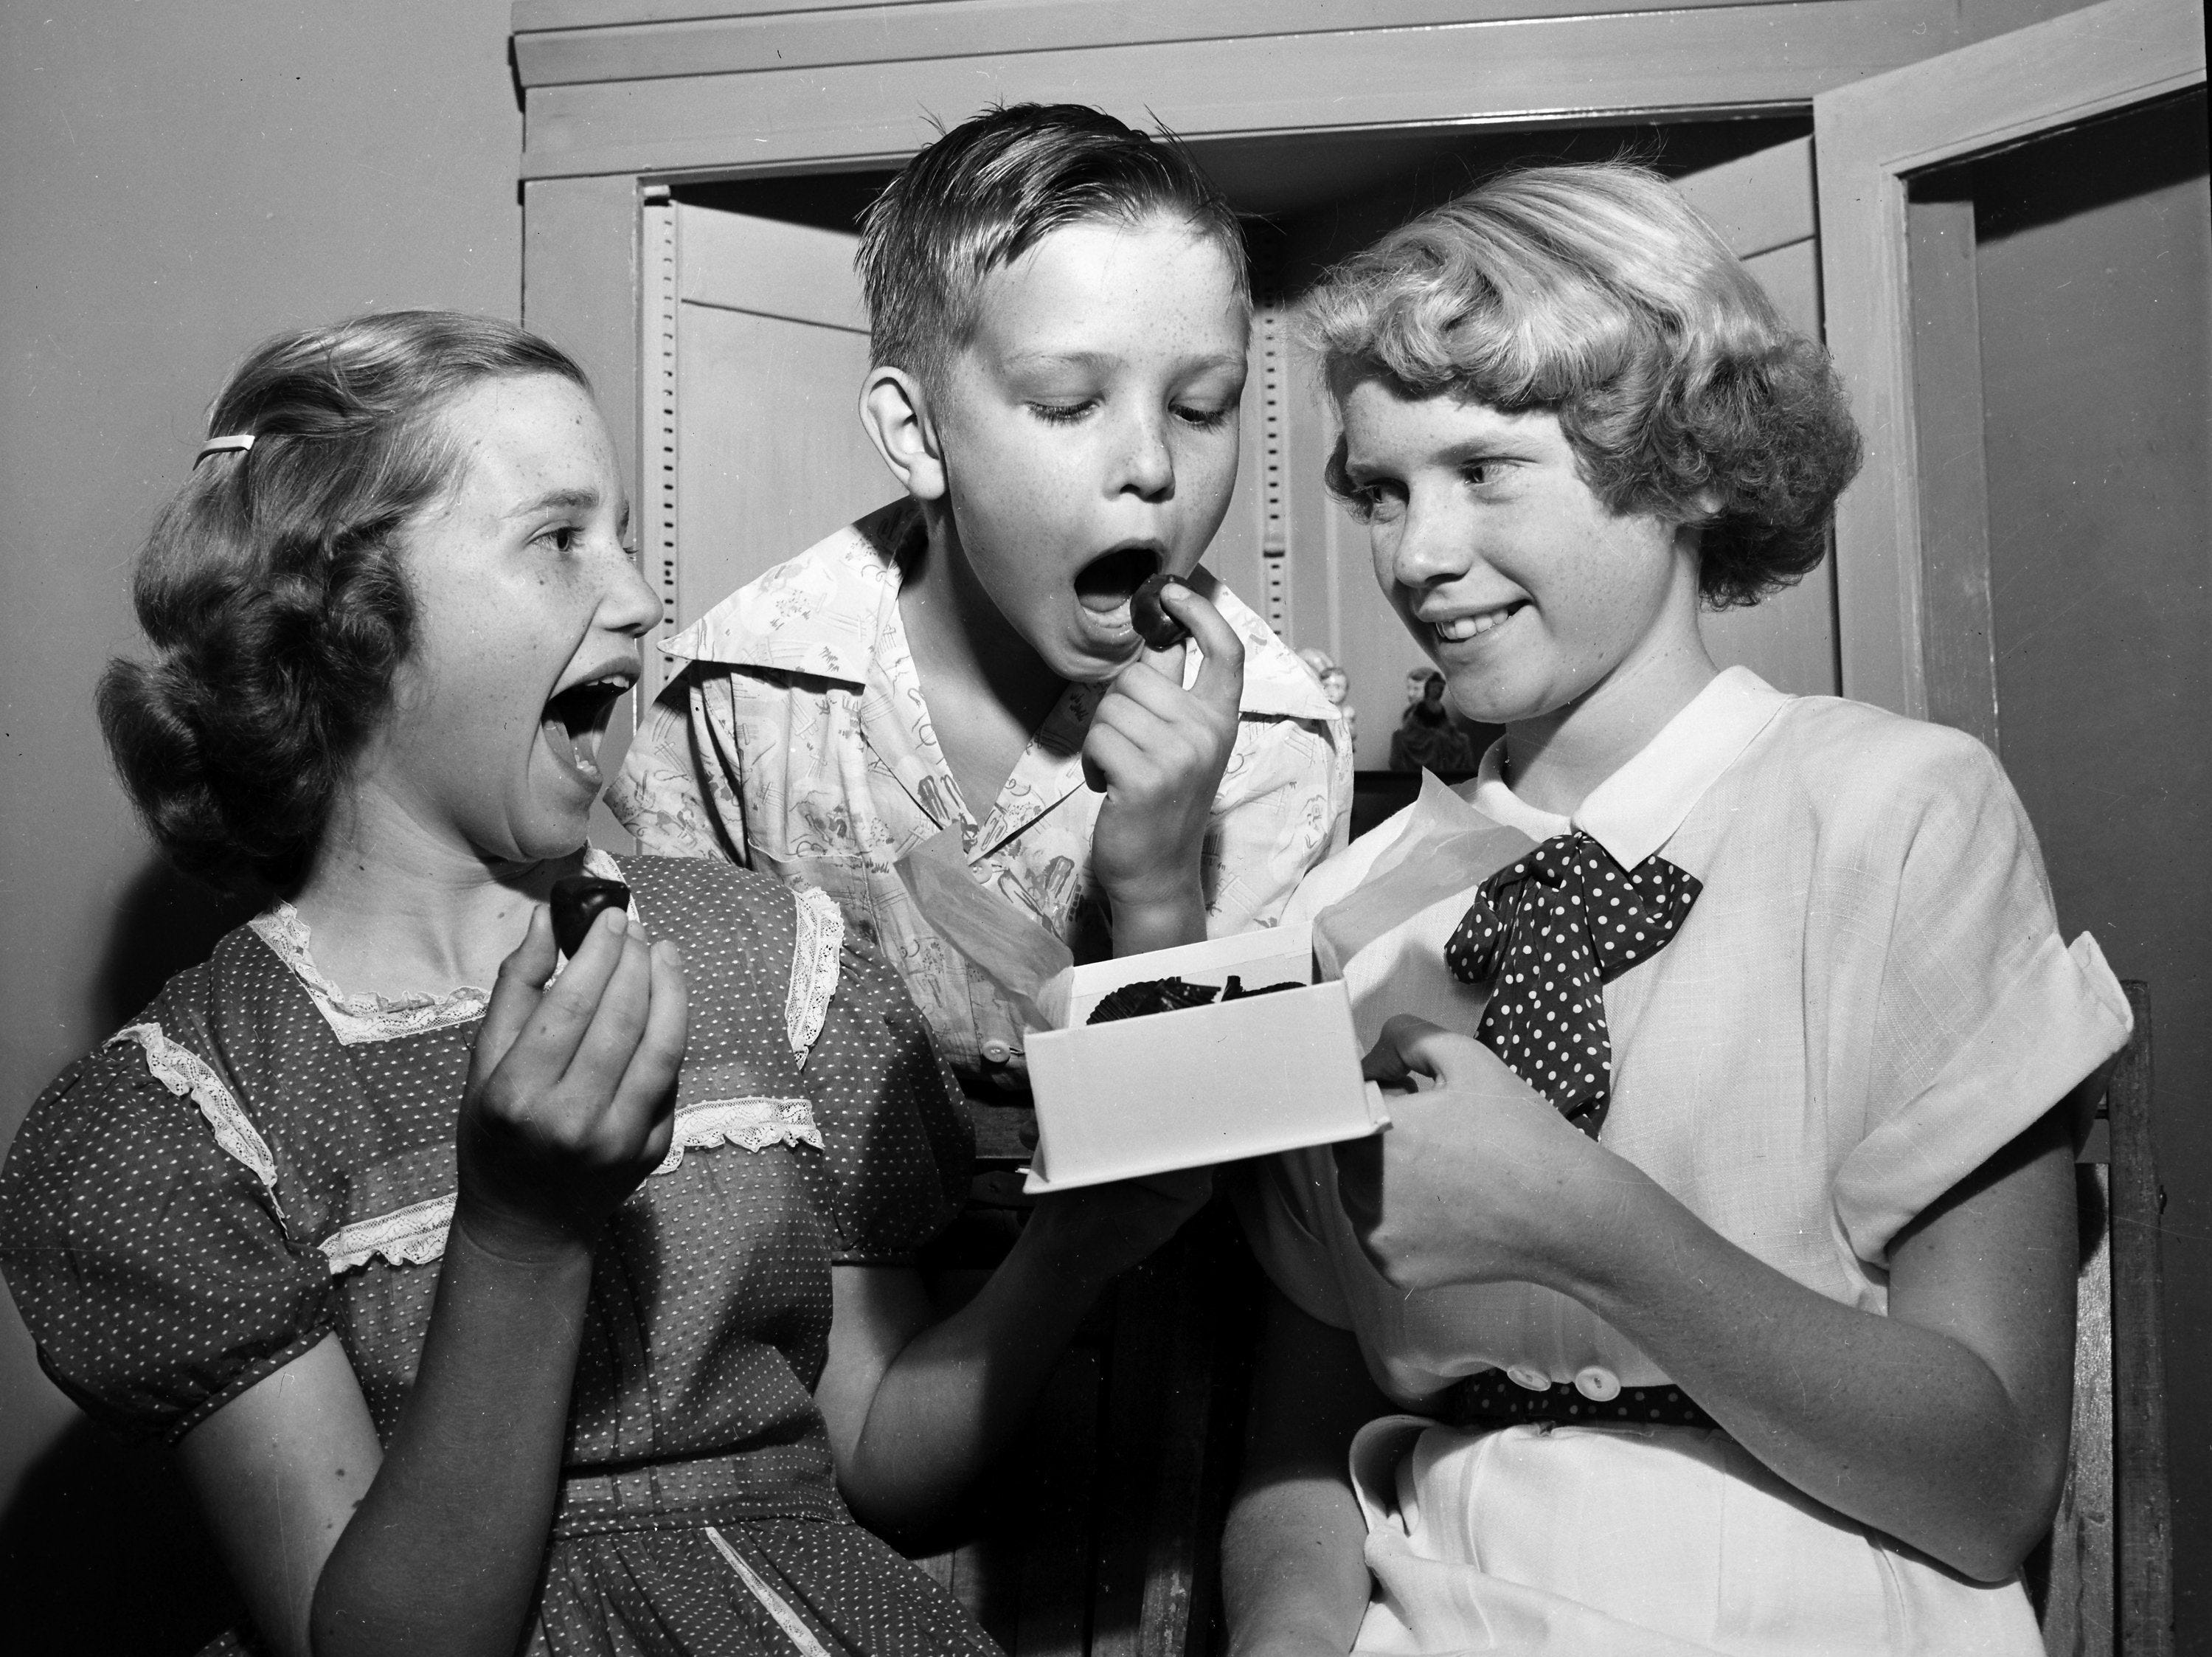 Among those exhibiting hobbies at Captain Jerry?s Hobby Show in June 1951 are these three hobbyists, who took time out to sample a box of candy. They are, from left, Bobbie Nell Speck, 13, of Capleville, Paul T. Richter, 9, of 982 Rozelle, and Frances Andrews, 11, of 760 Cypress.